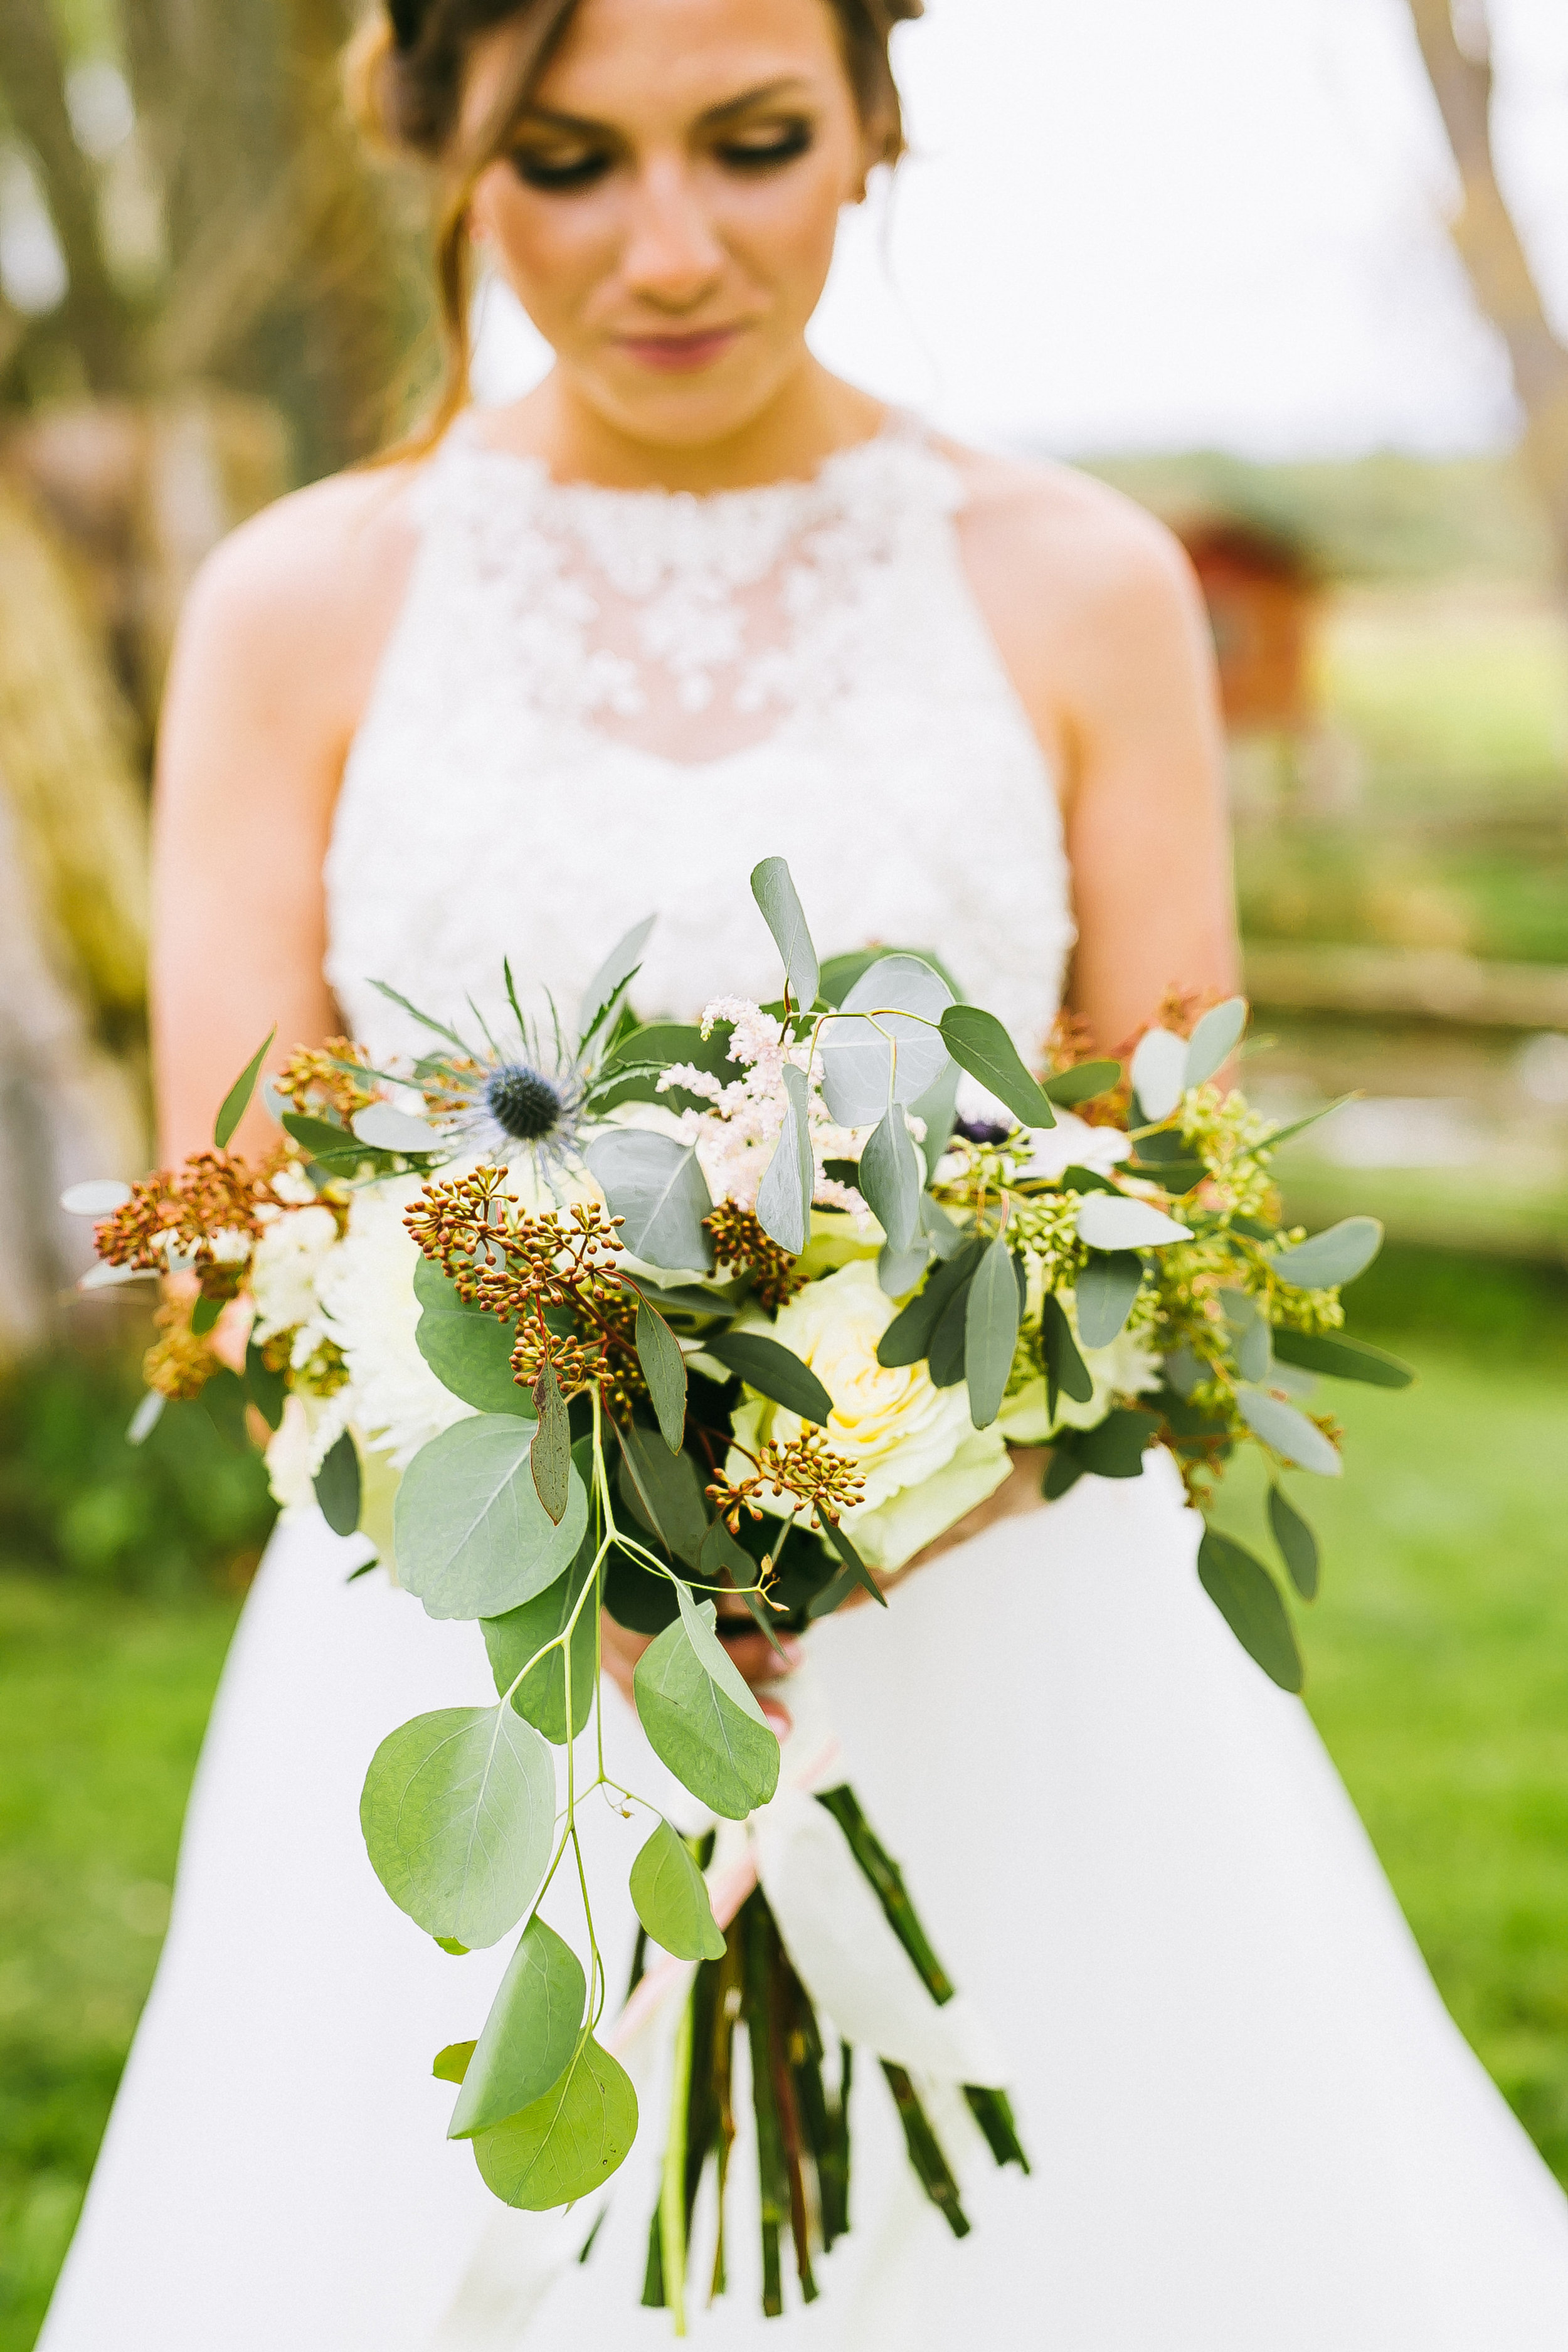 We created her bouquet with seeded eucalyp